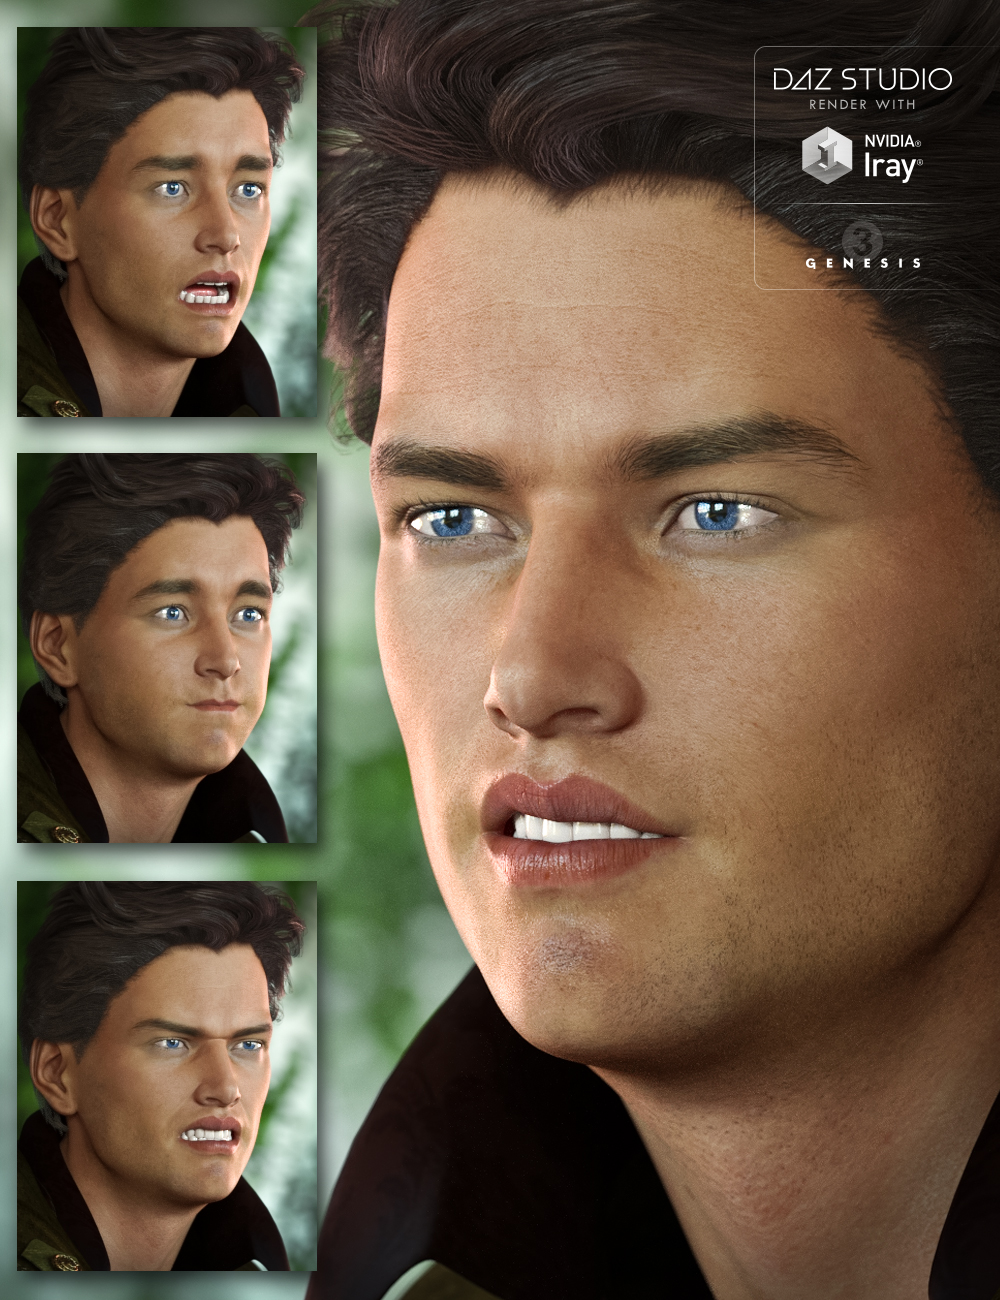 Michael 7 Expressive by: Neikdian, 3D Models by Daz 3D